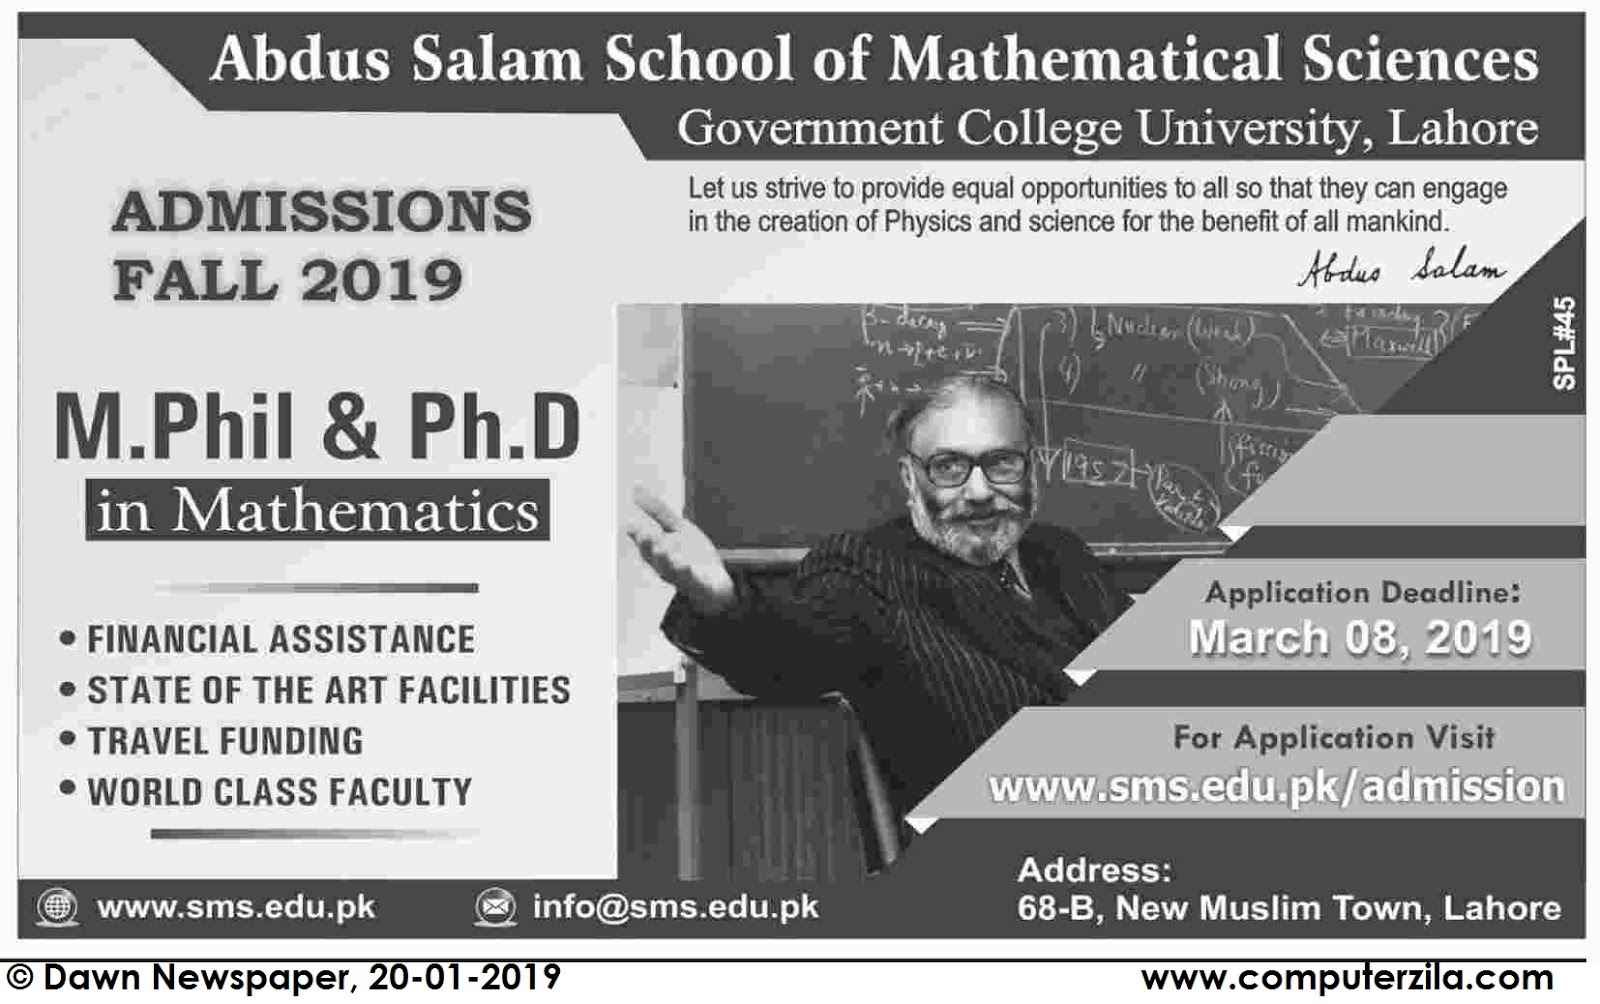 Admissions Open For Spring 2019 At AS-SMS undefined Campus